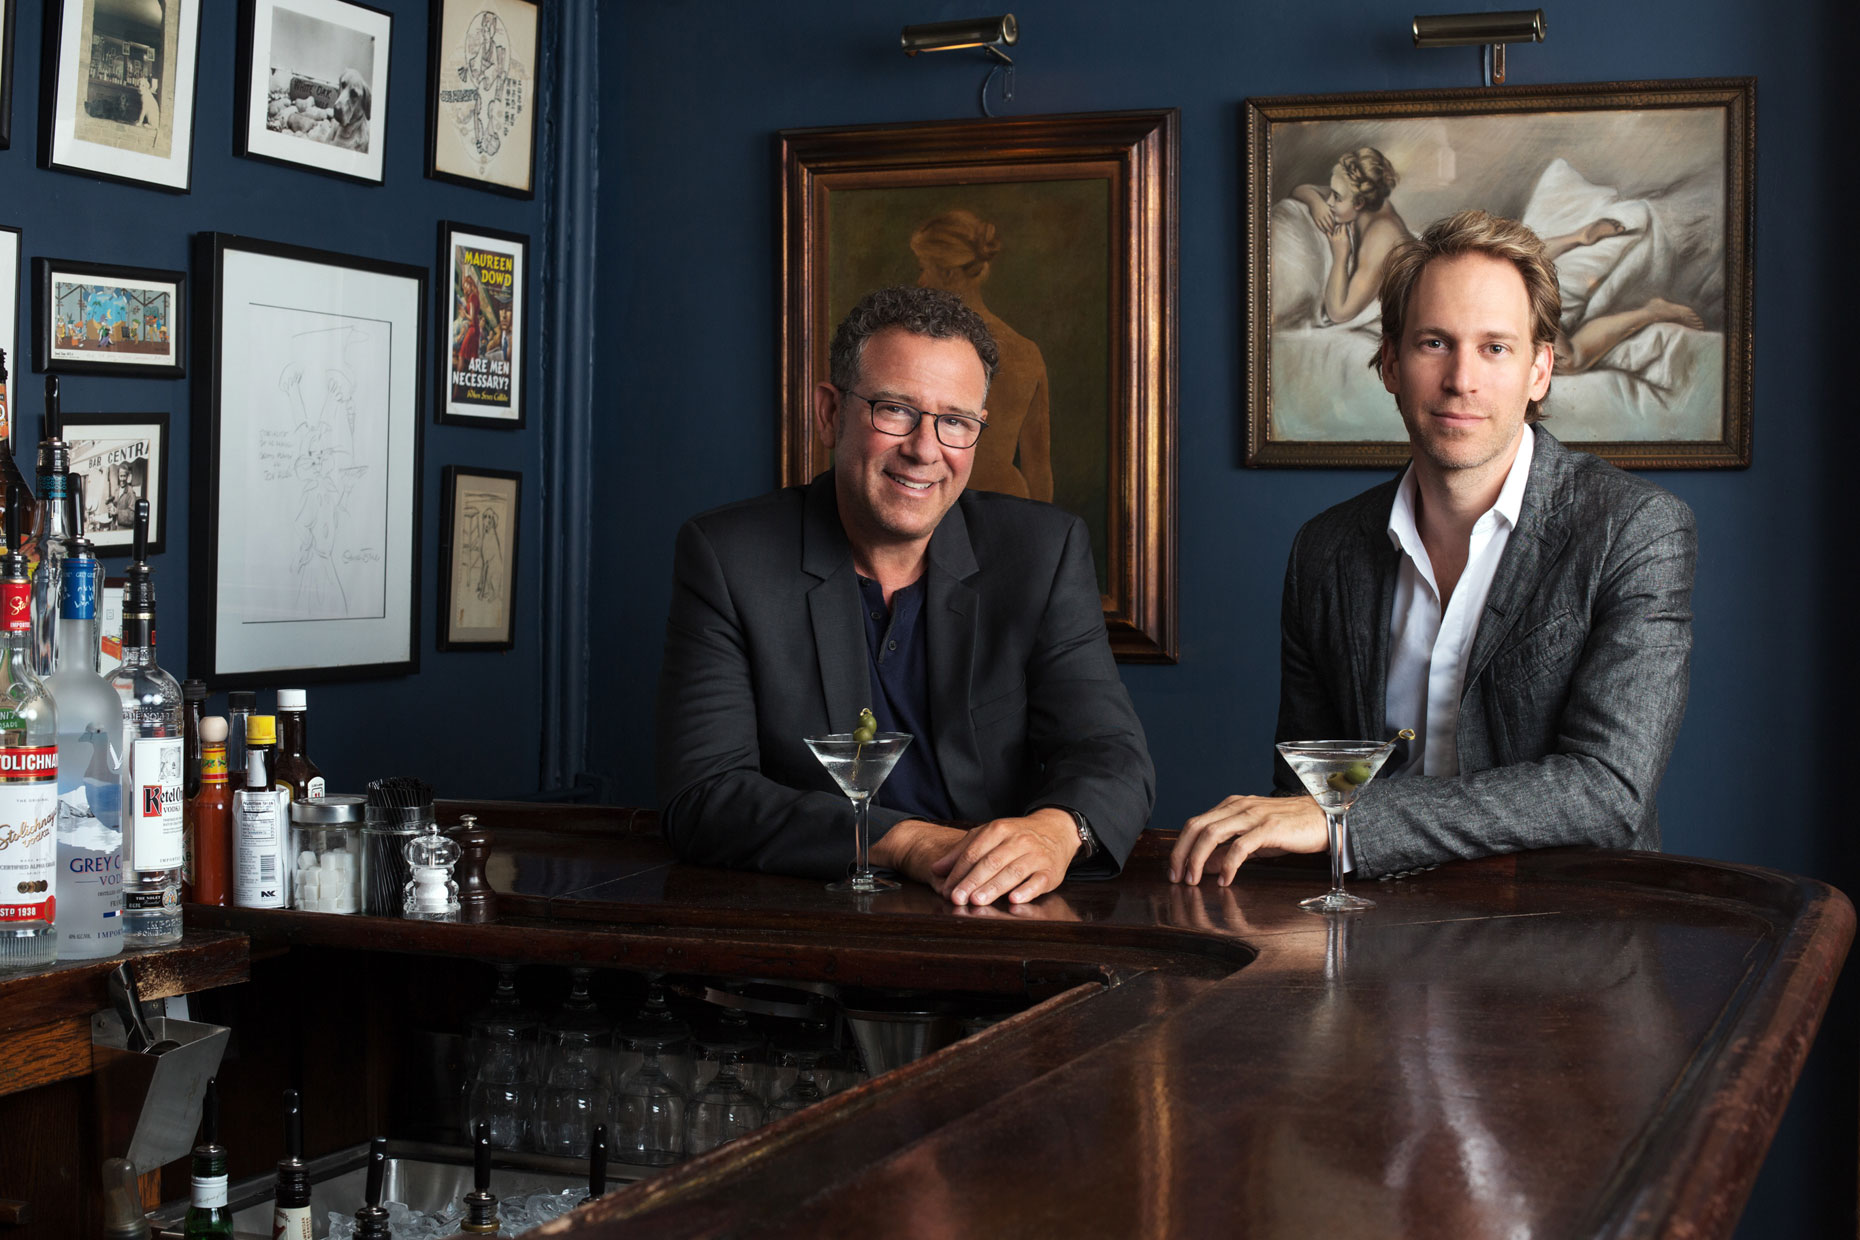 Broadway director Michael Greif and set designer David Korins meeting in NYC, by Allison Michael Orenstein